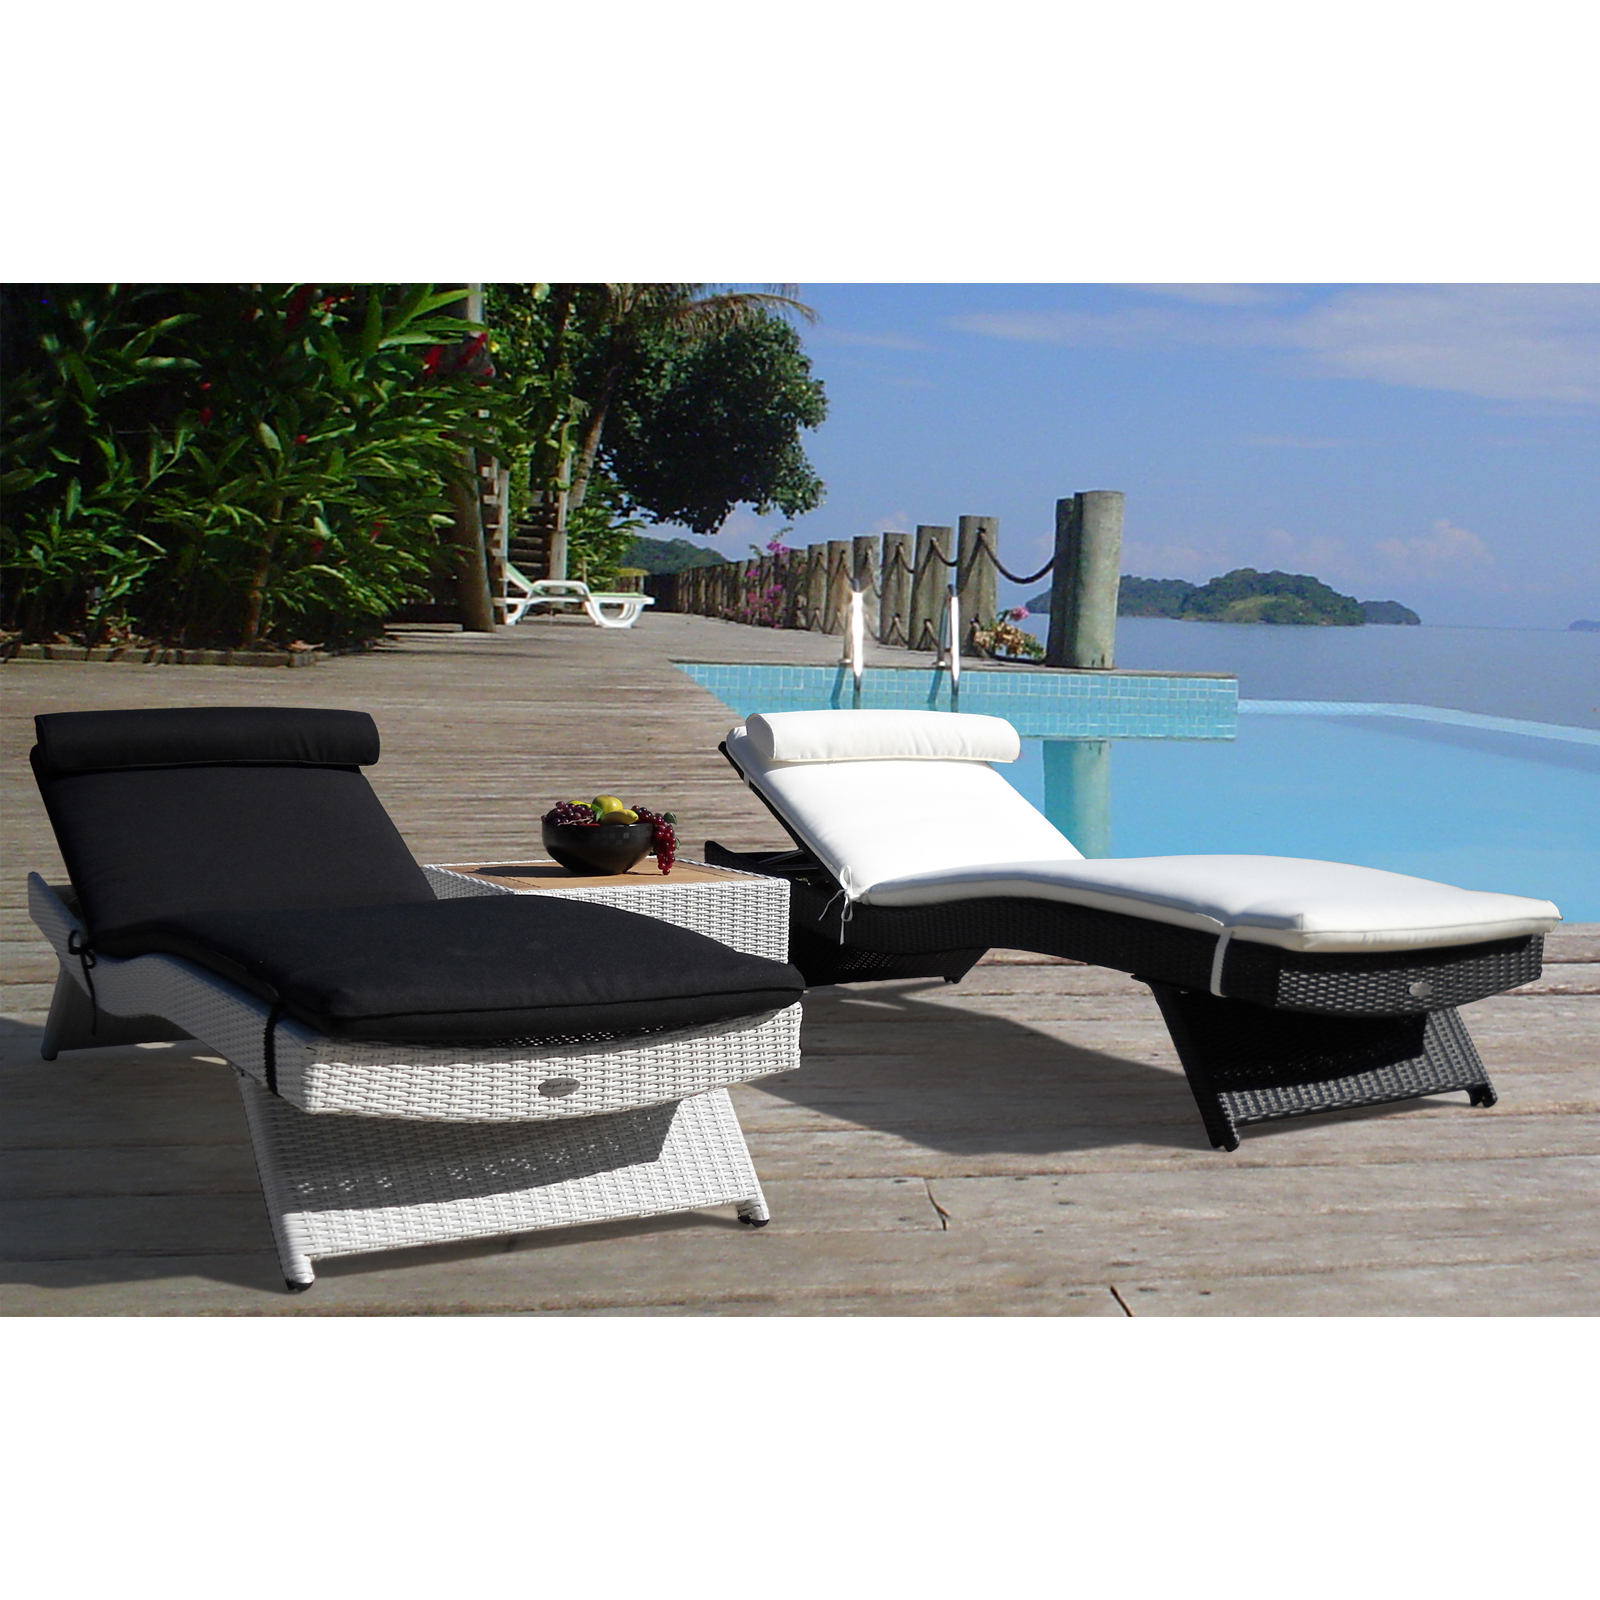 Royal teak all weather wicker wave sun bed chaise lounge for All weather chaise lounge